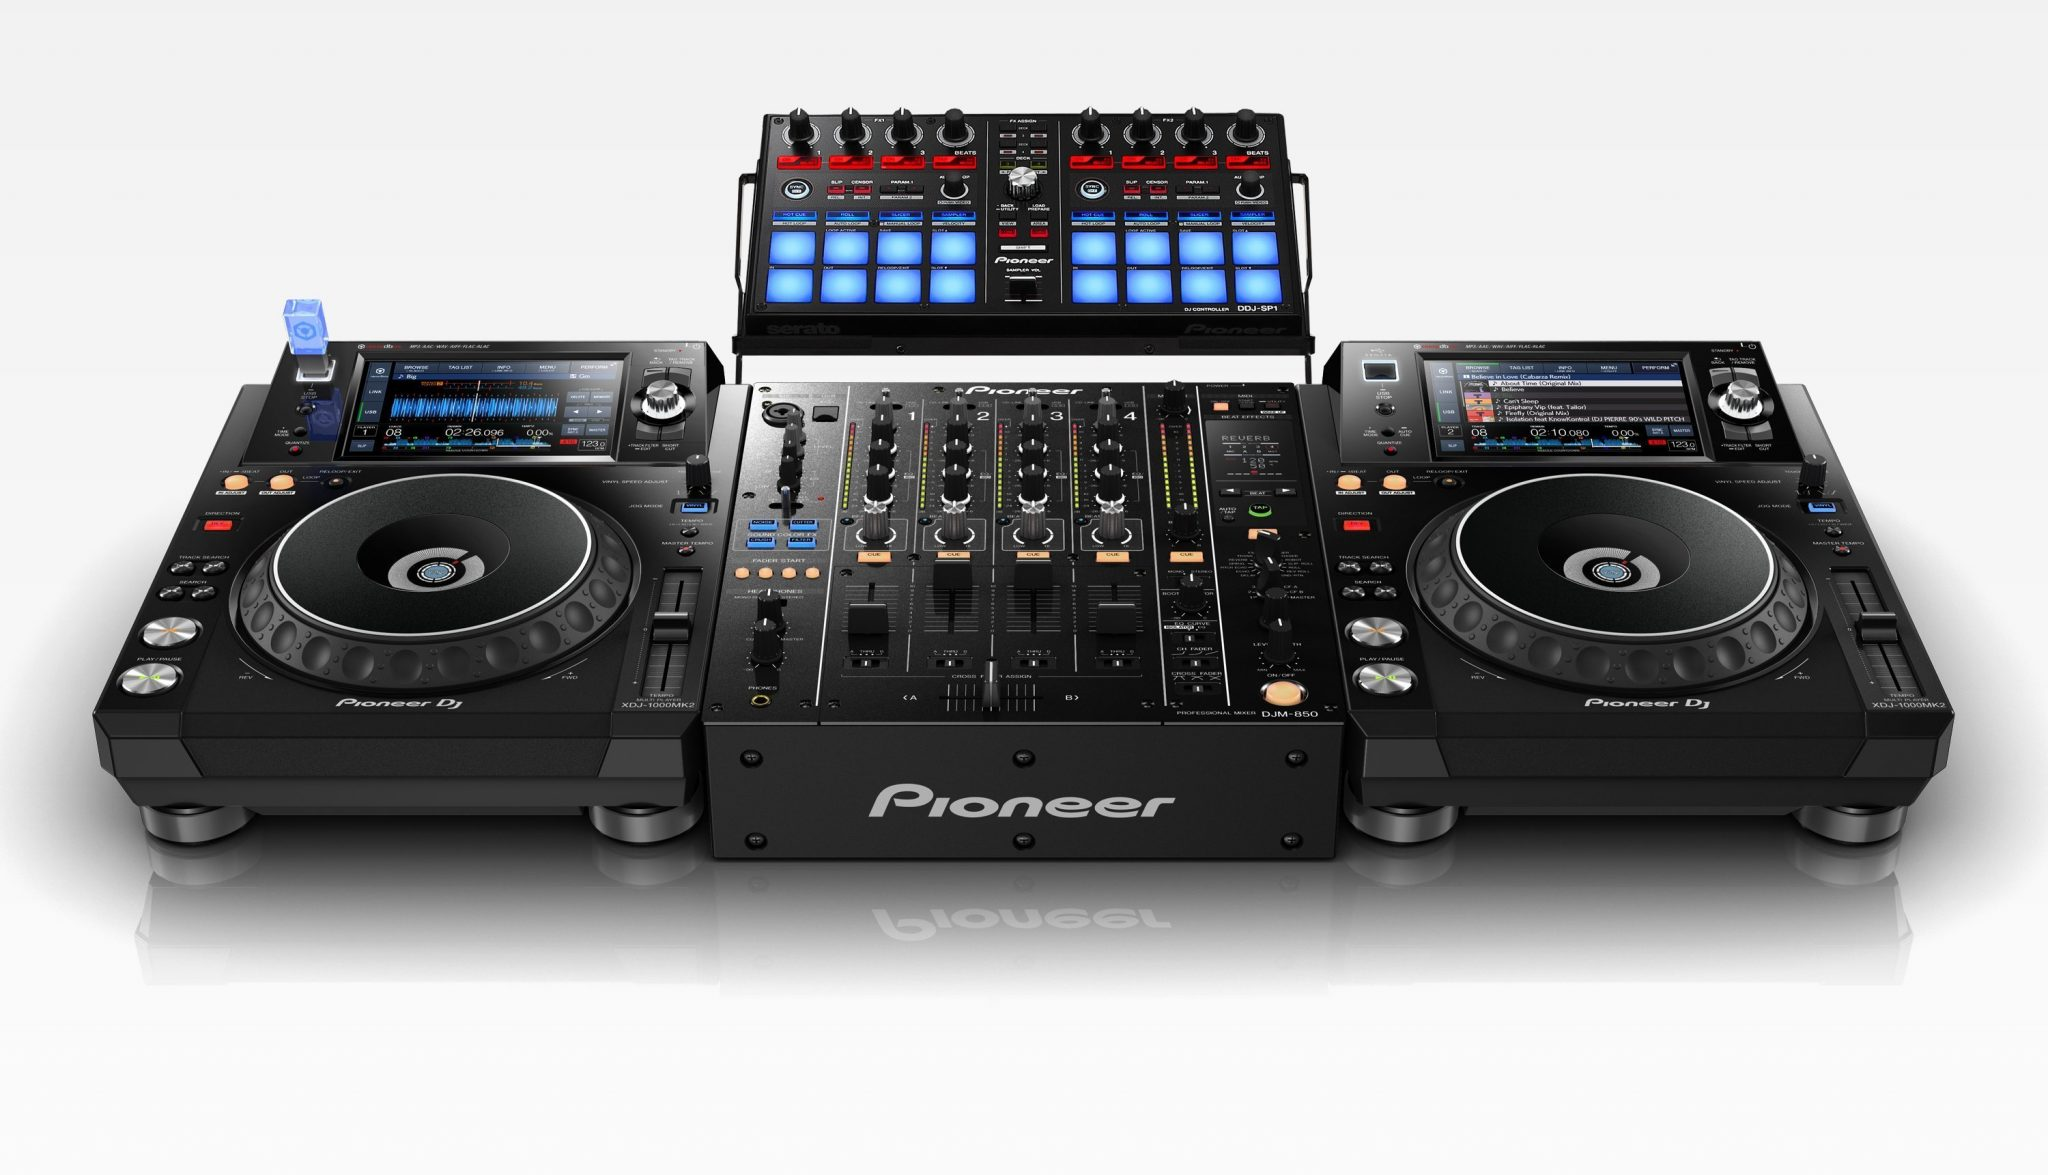 AVIC Z120BT in addition Shelf Systems besides Transcend External Hard Disk Drive External Storejet 500gb Black Orange likewise Product m Sony Cdx Gt430u p 23858 furthermore Watch. on pioneer audio system